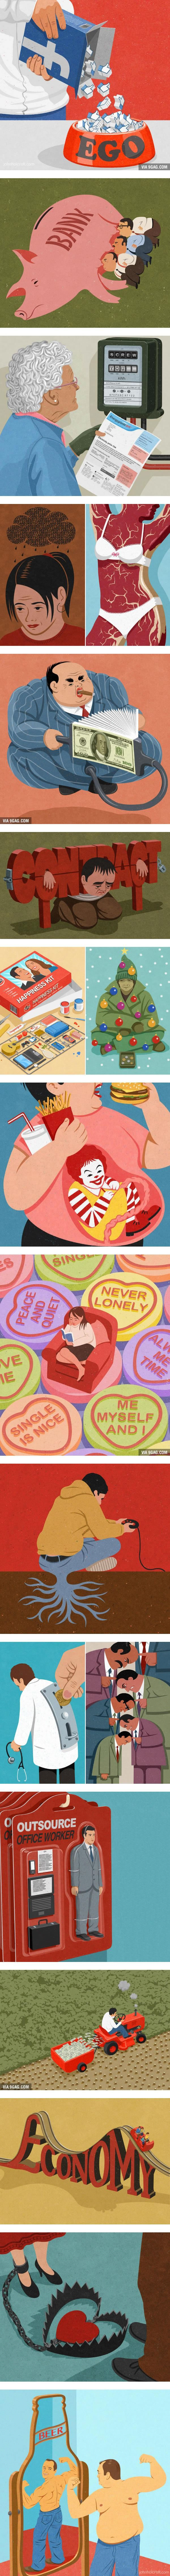 19 Satirical Illustrations With Deep Meaning Behind Them (by John Holcroft)